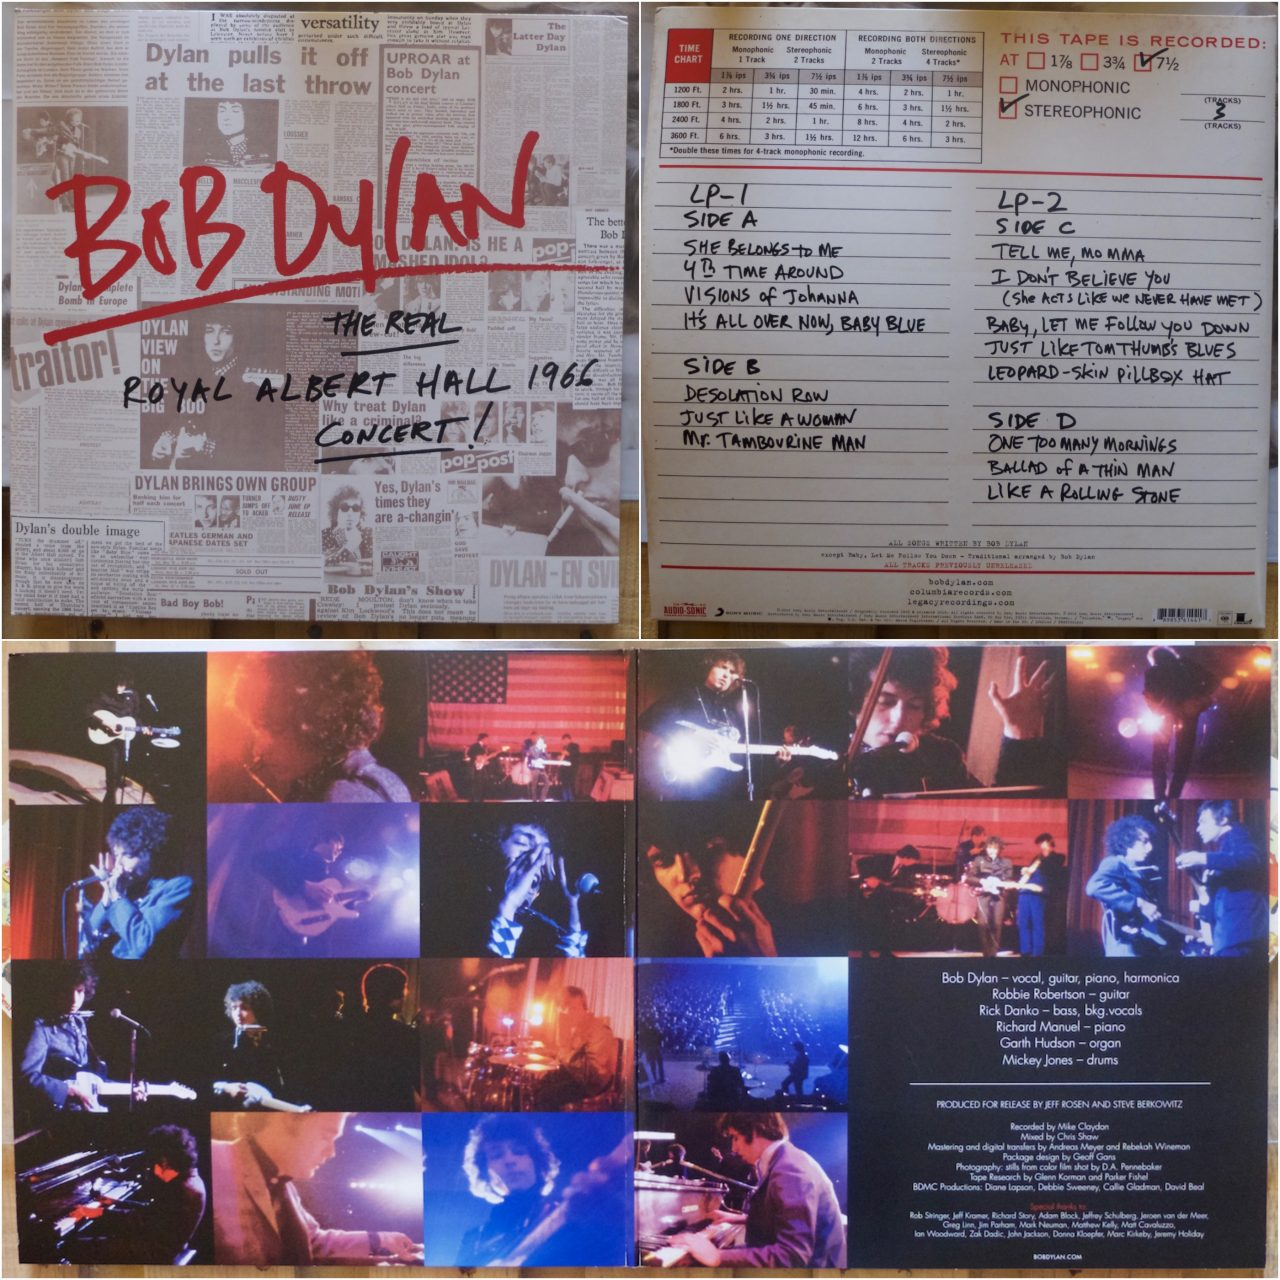 dylan-real-royal-albert-1966-concert